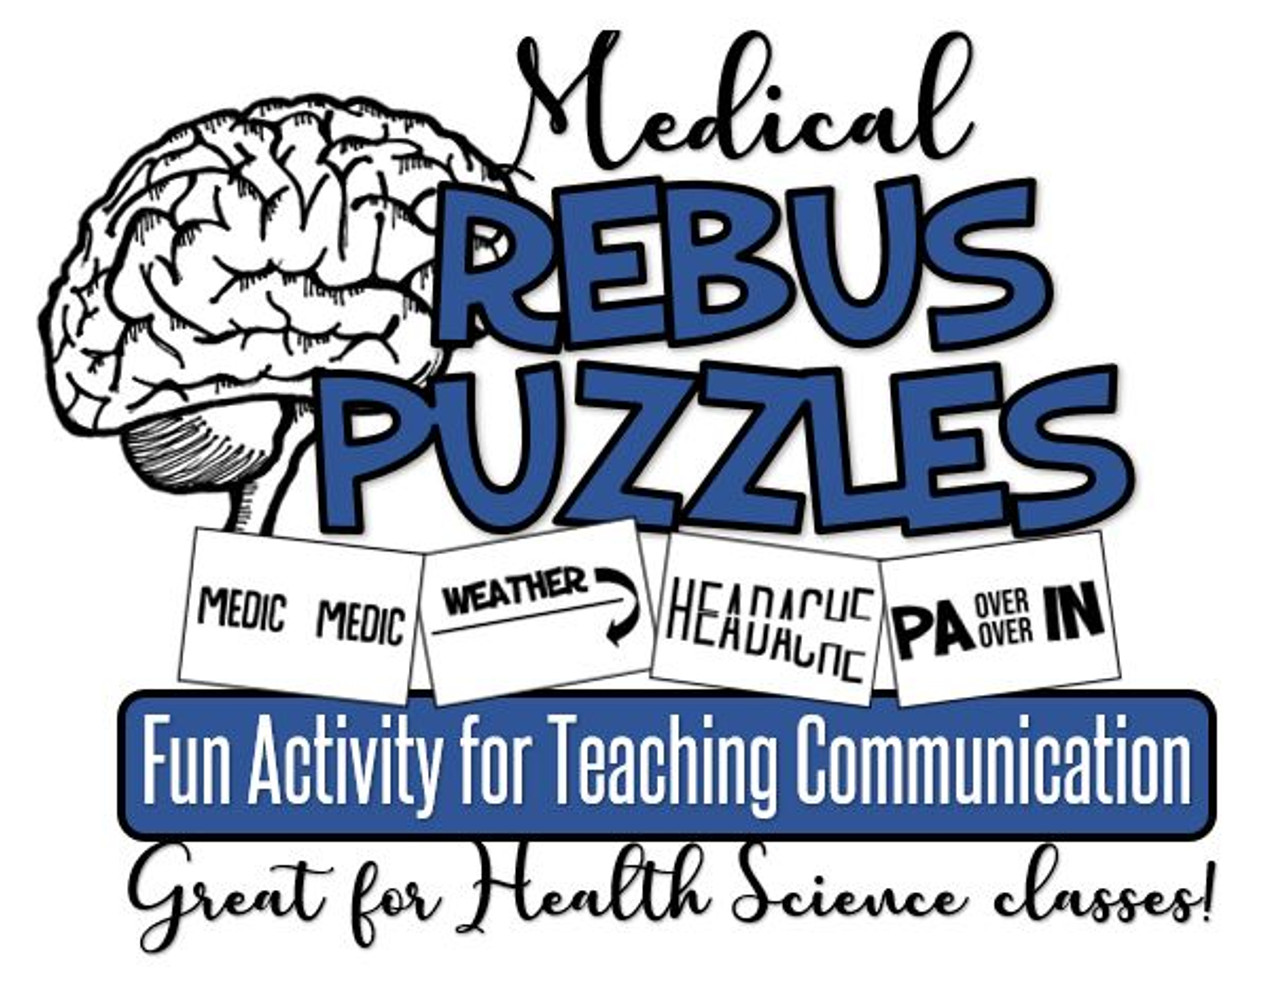 hight resolution of Medical Rebus Puzzles- Great for teaching Communications in Health Science!  - Amped Up Learning